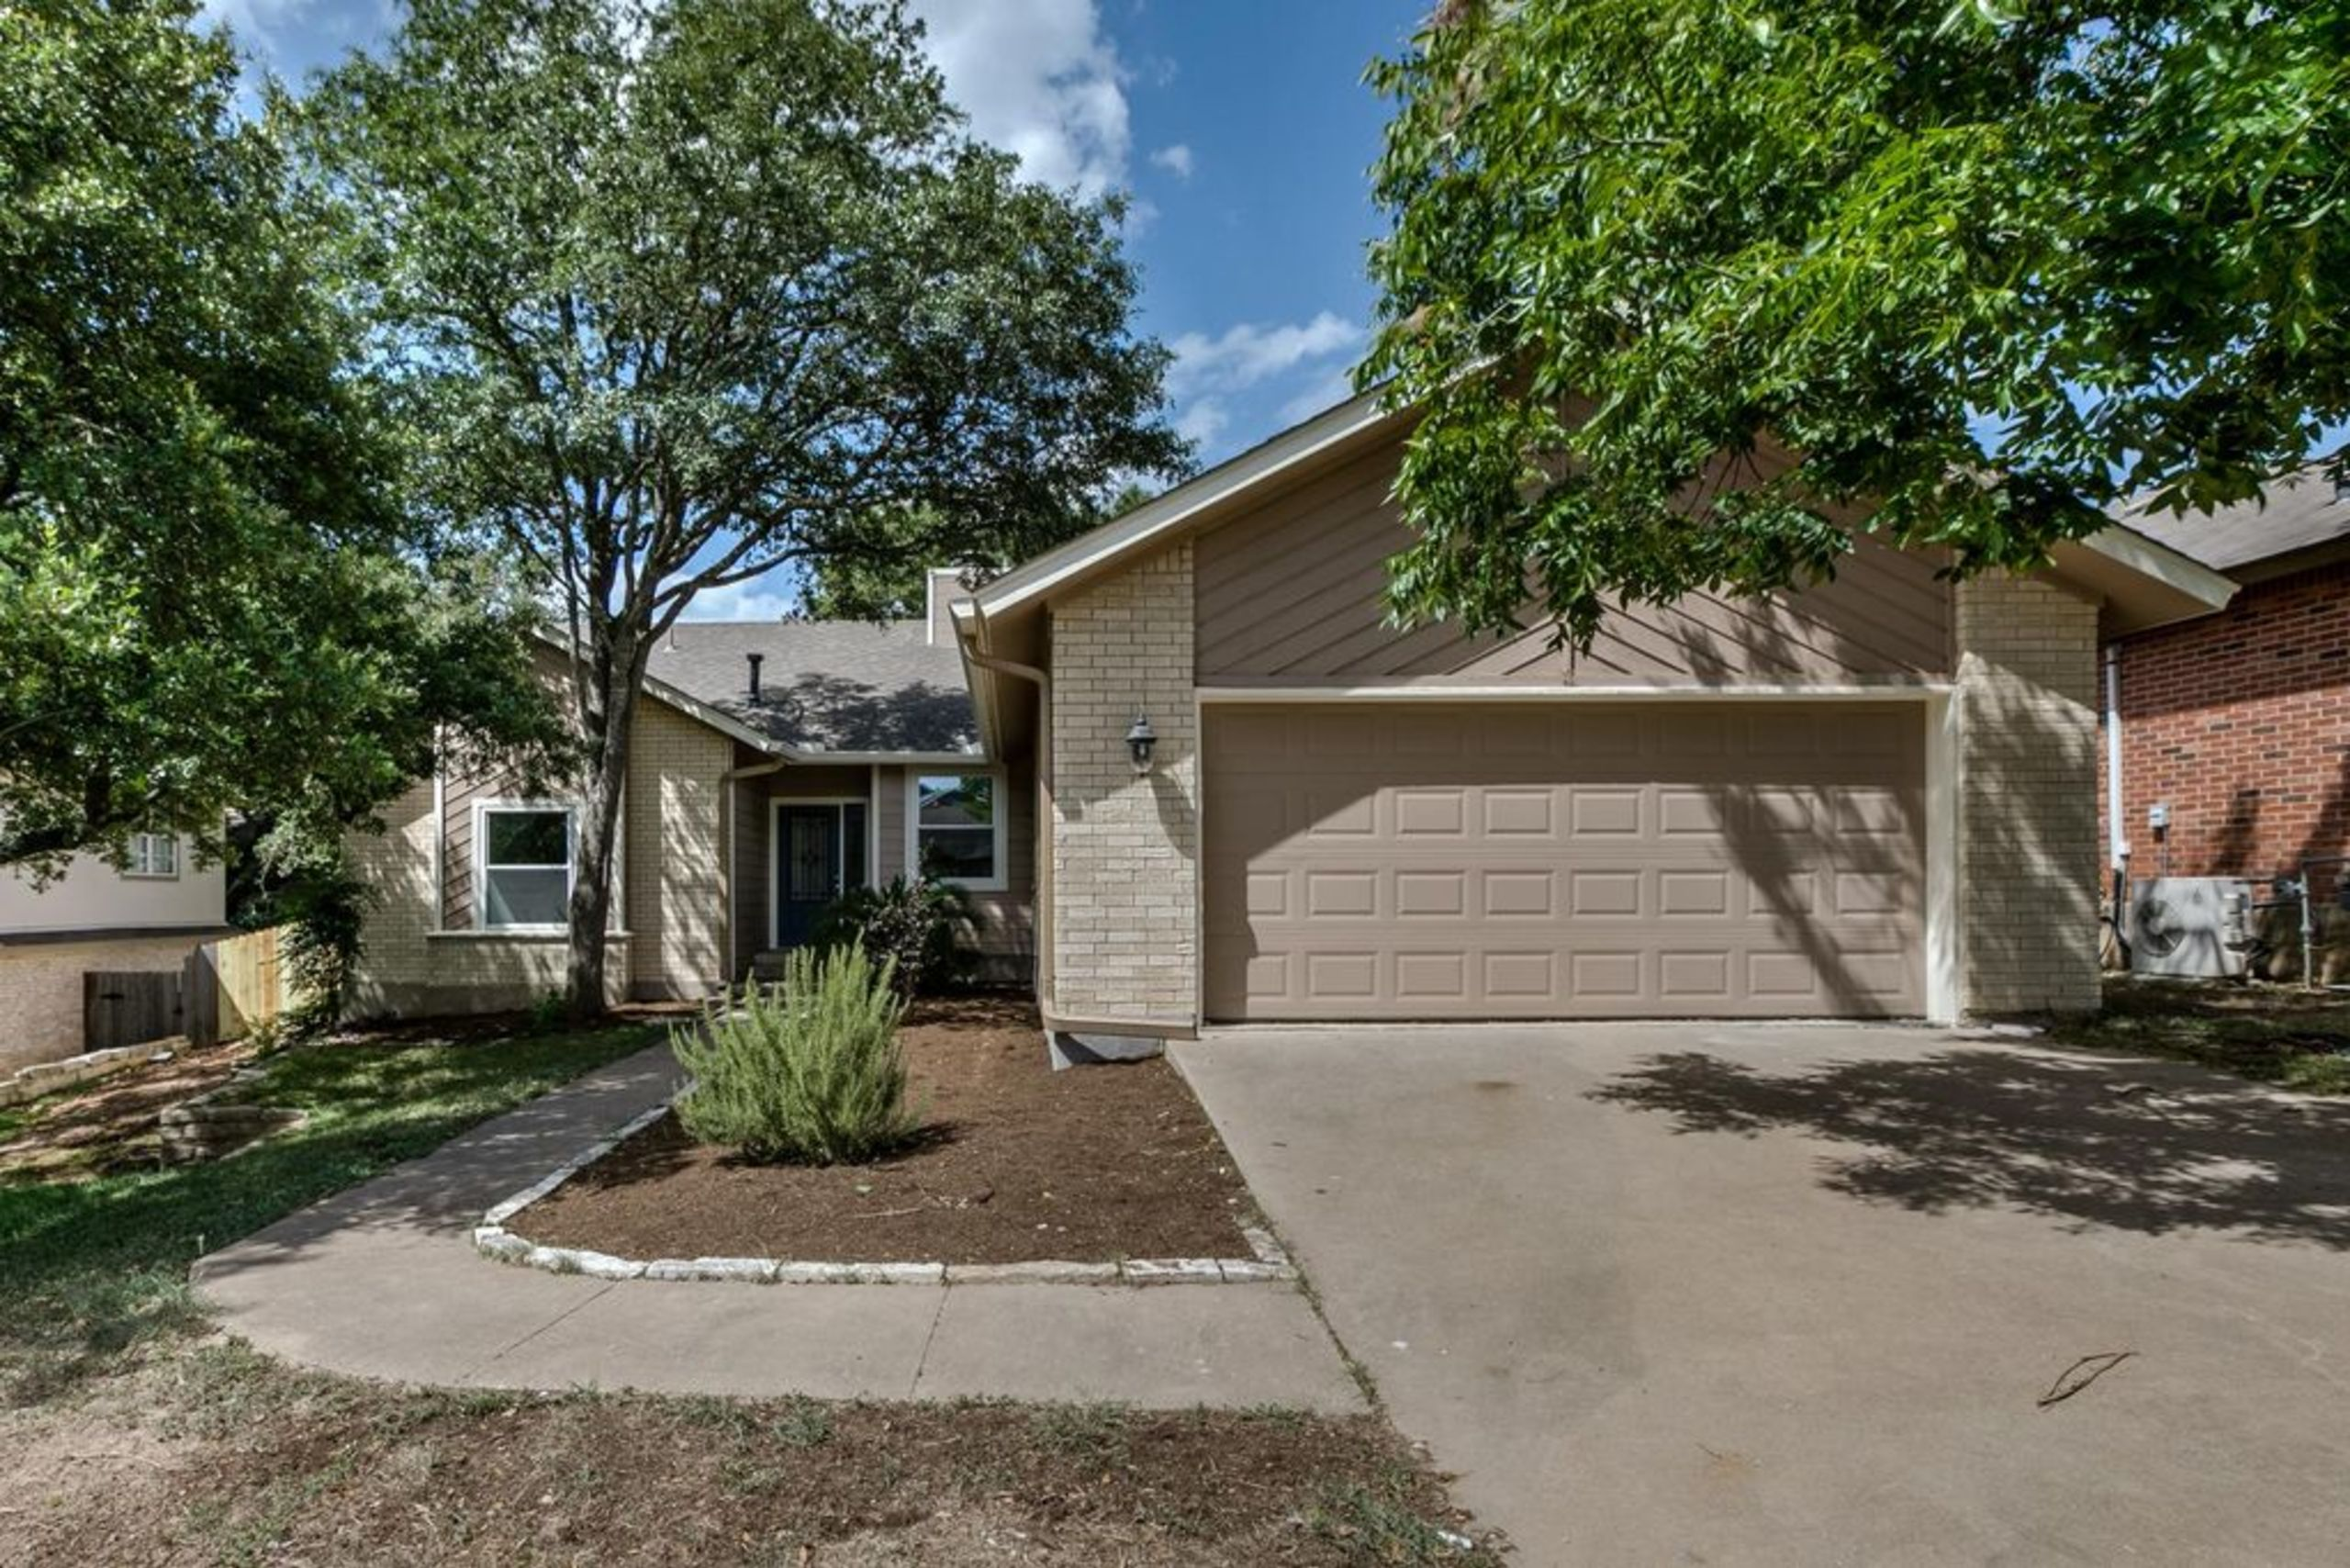 6706 Breezy Pass - UNDER CONTRACT in 7 days!!